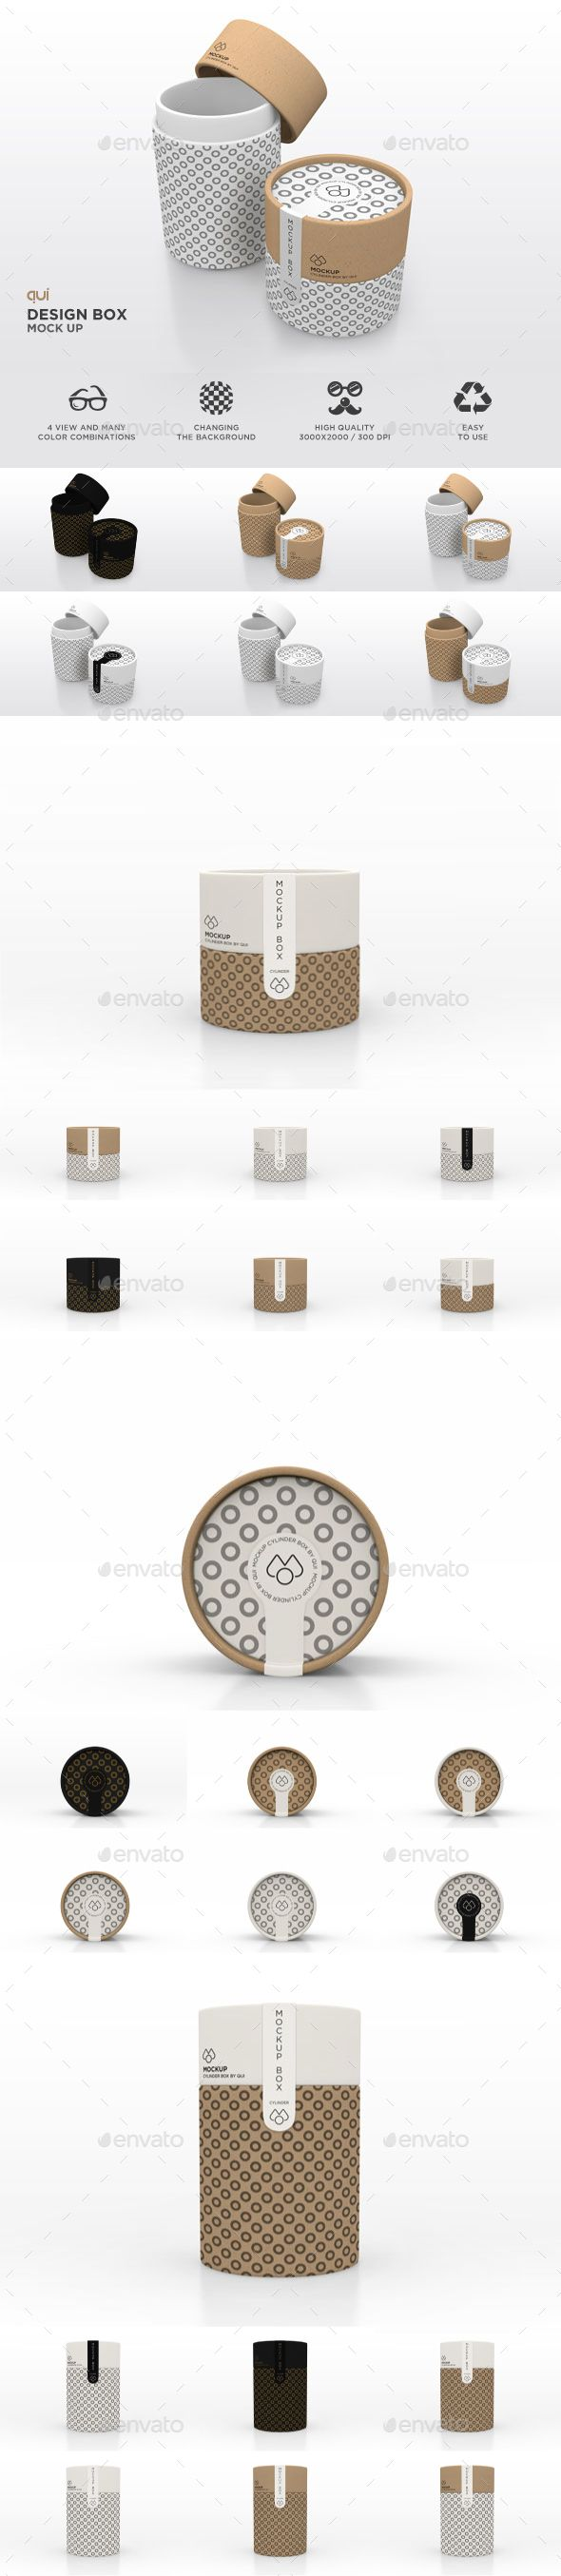 Packaging Mock Up - Paper Carton Tube by quizzicall Our Packaging Mock Up �20Paper Carton Tube will help you visualize the real look and feel of a design on your merchandise. These mo